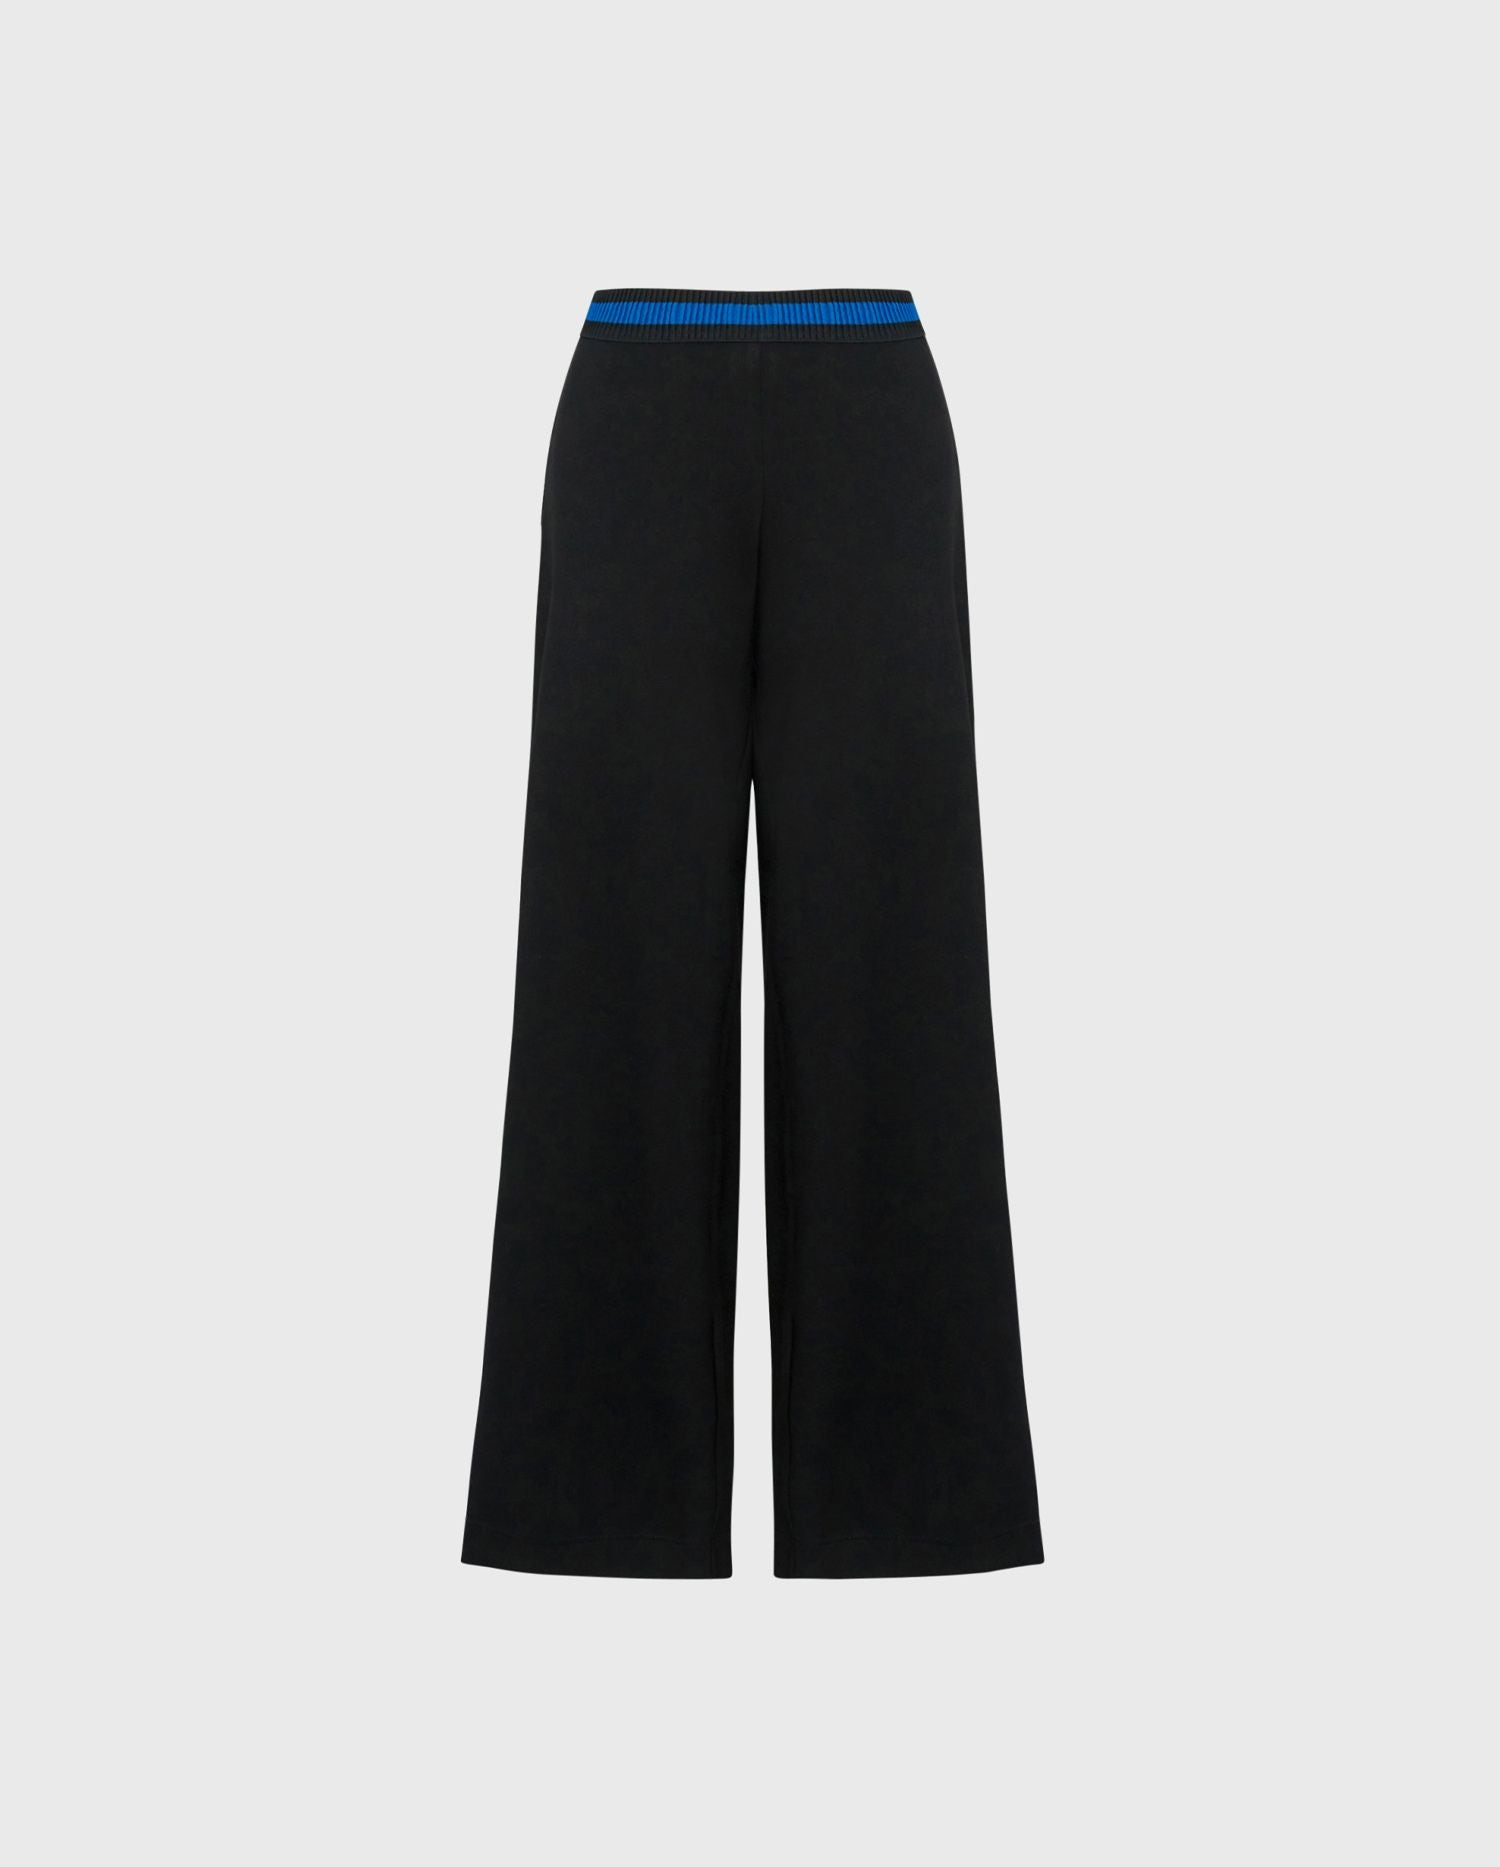 Both comfortable and stylish the BALBOA wide leg pants are the pefect addition to your wardrobe